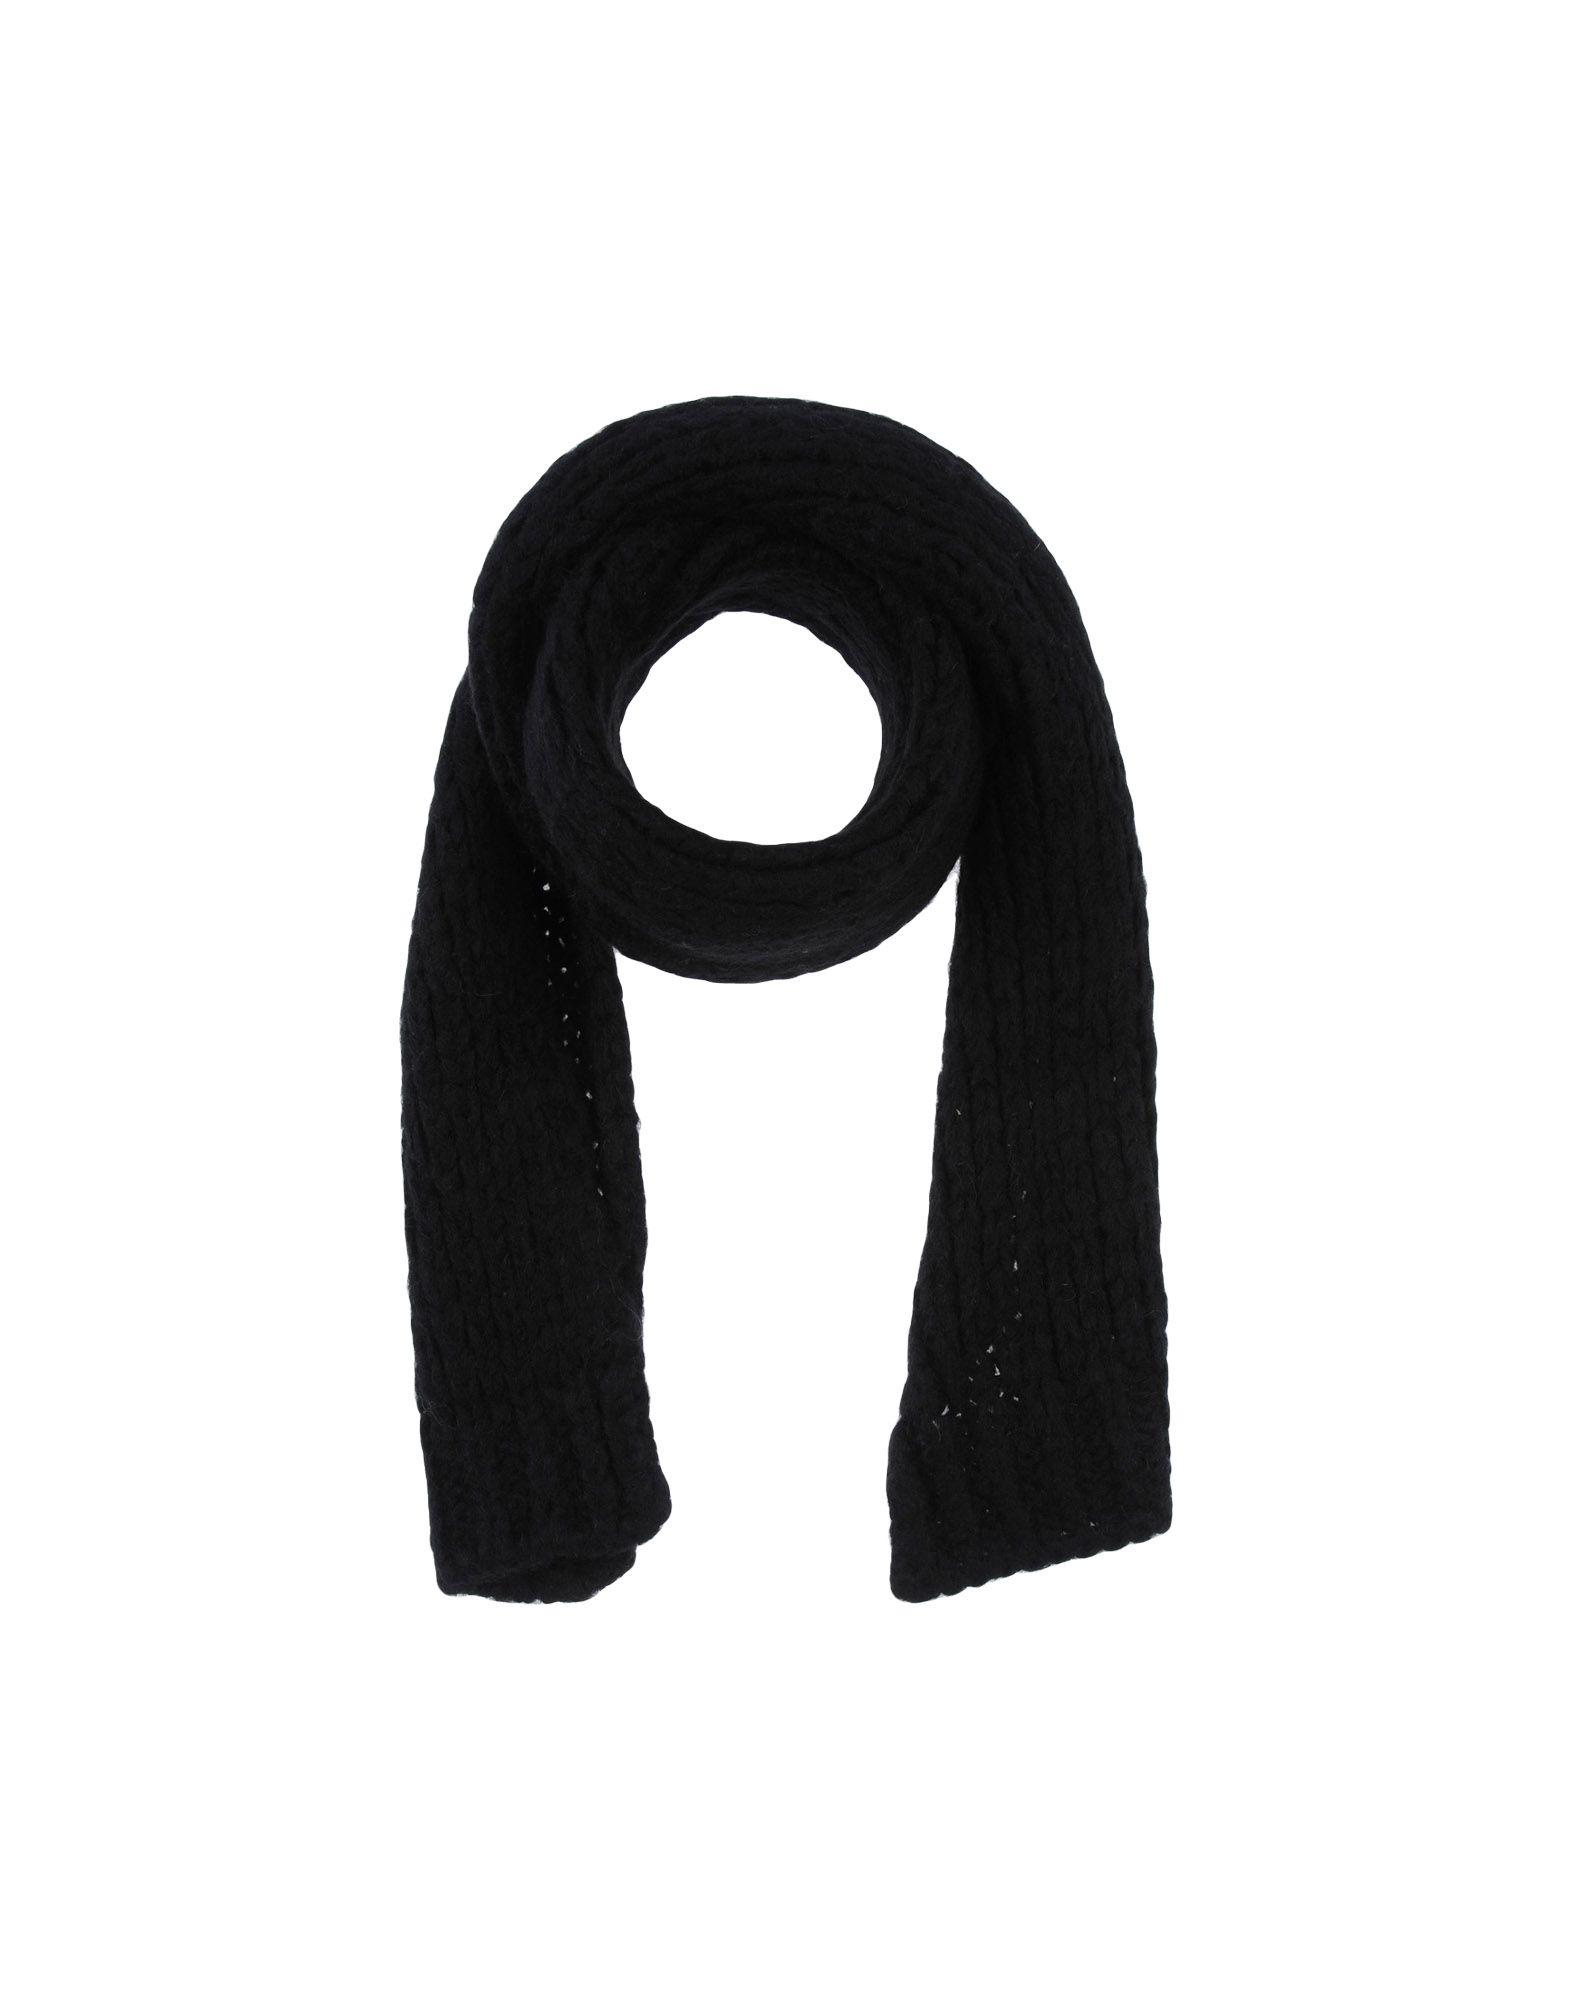 ACCESSORIES - Oblong scarves Roberto Collina Cheap Amazon Buy Cheap Purchase Big Sale Online T5yXEpcrM